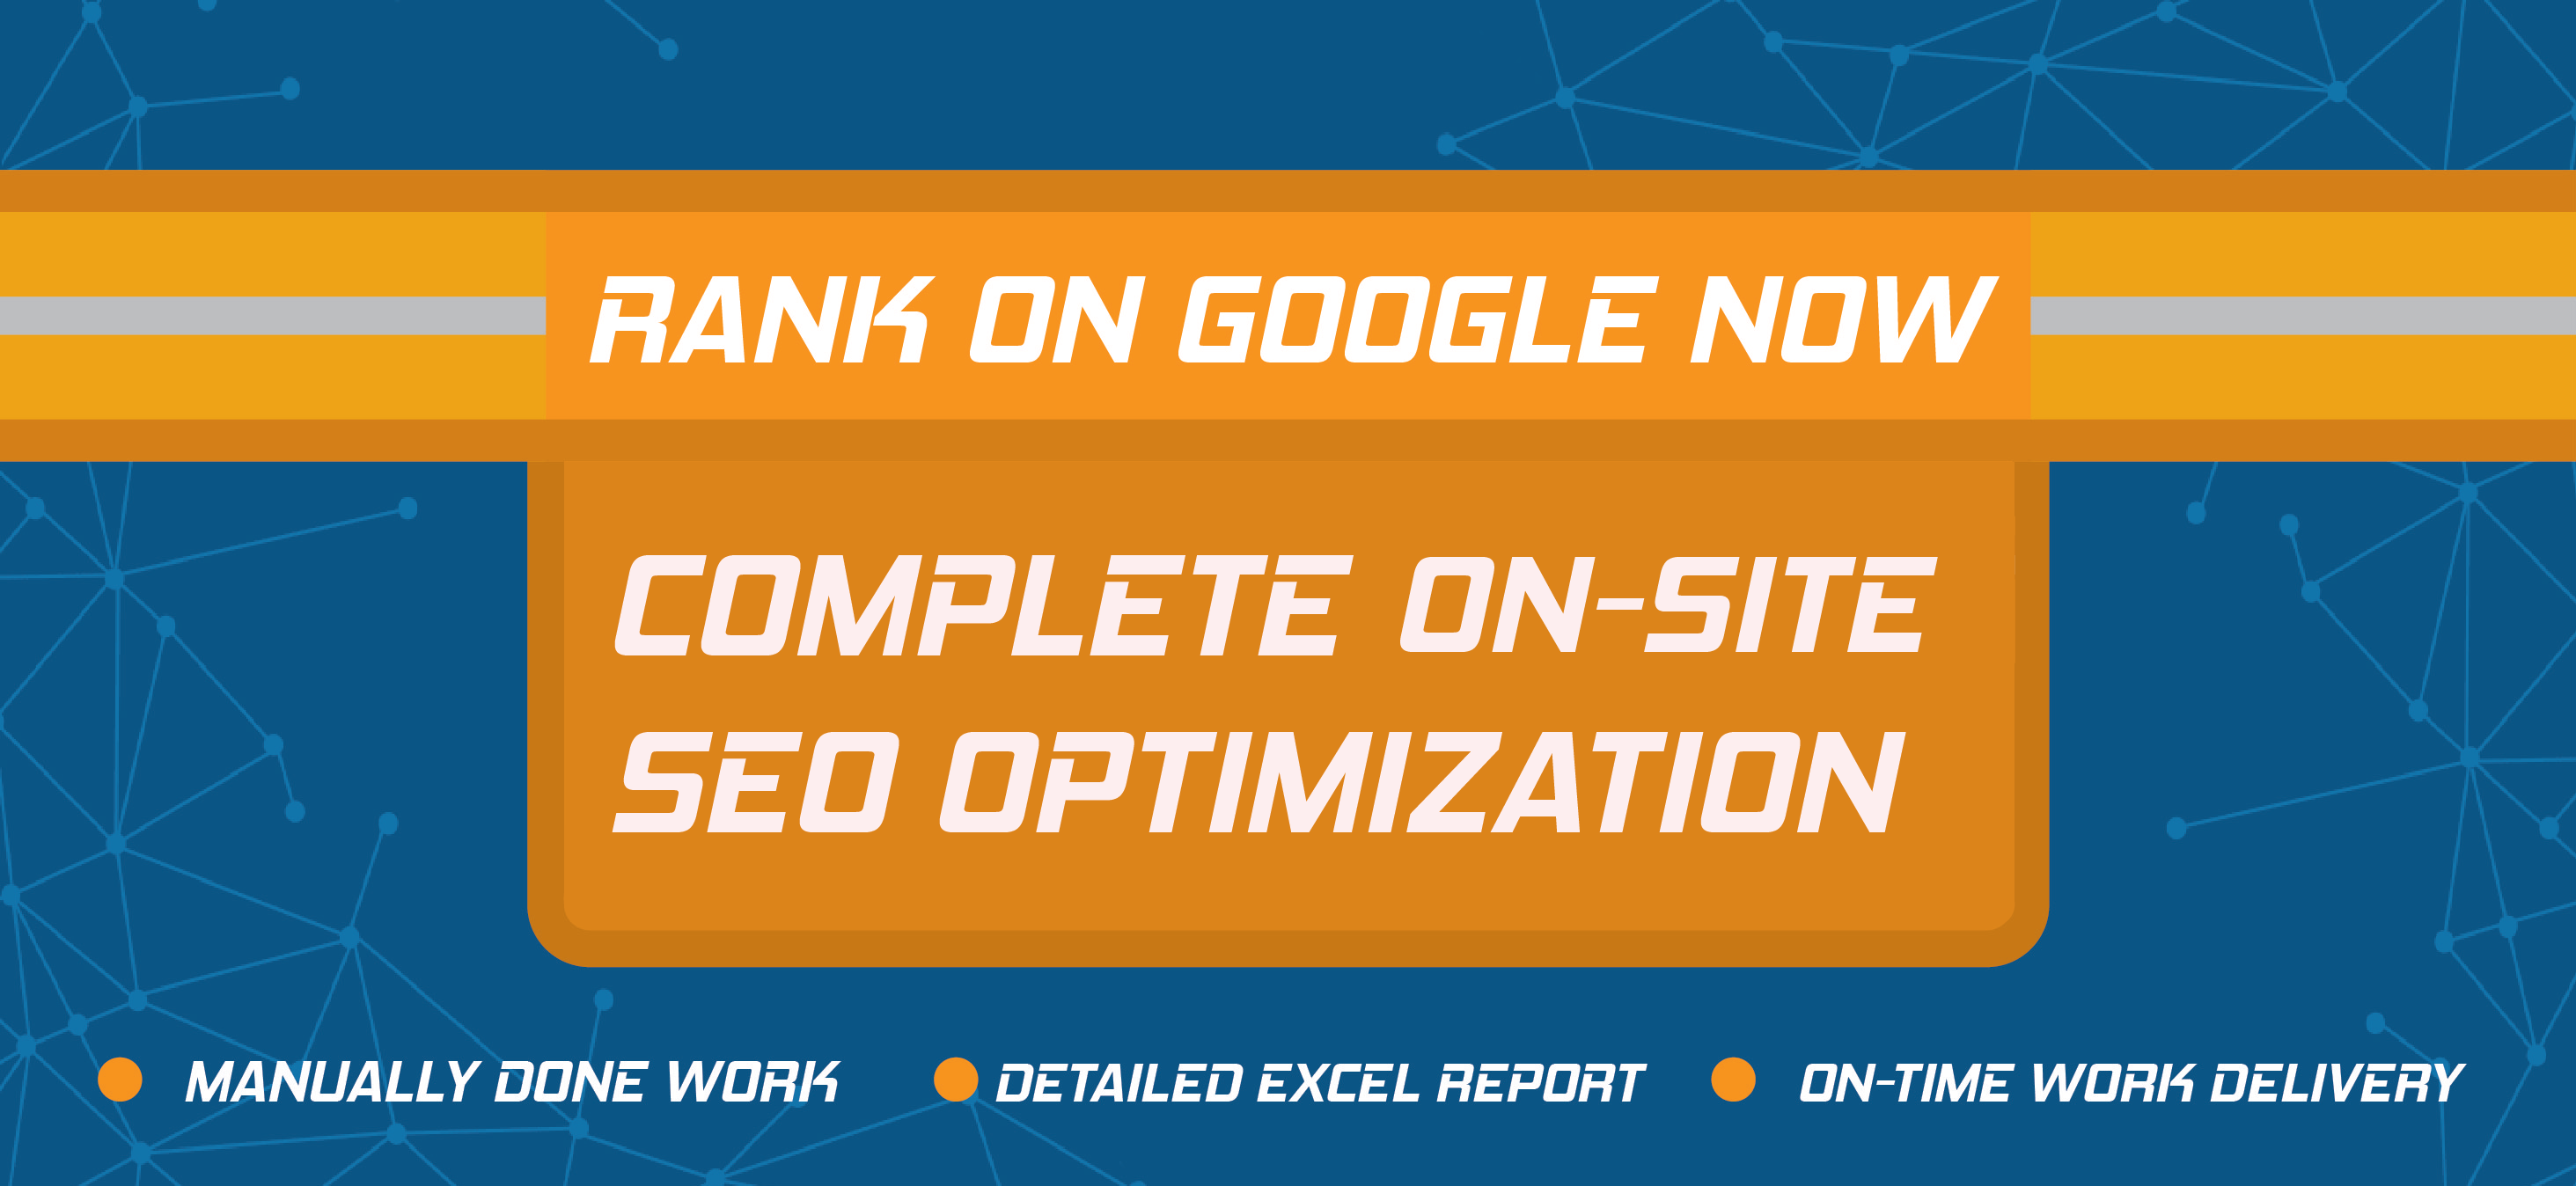 COMPLETE ON=SITE SEO OPTIMIZATION FOR YOUR WORDPRESS WEBSITE